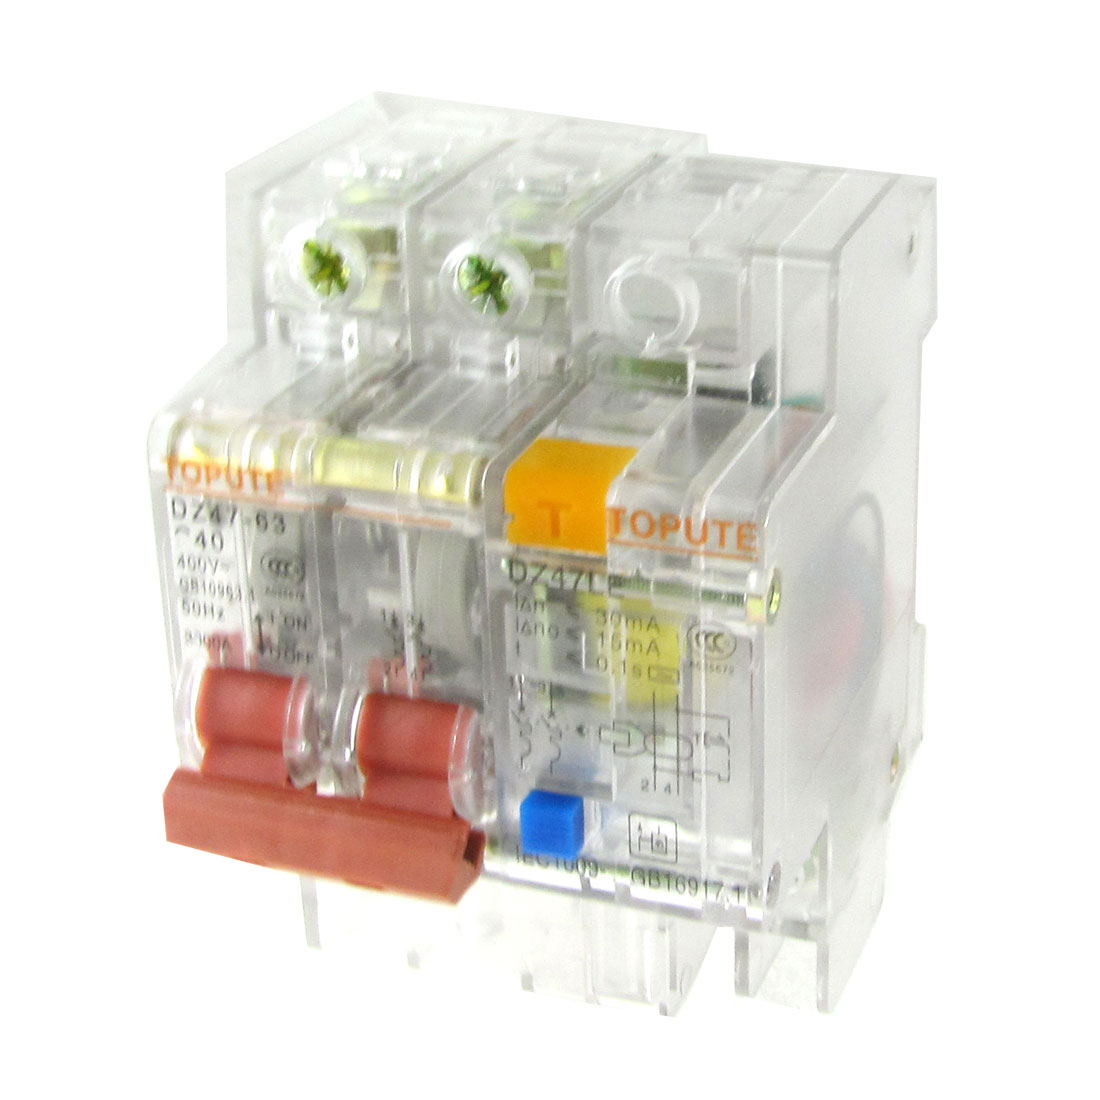 Transparent-AC-400V-40A-2-Poles-2P-Earth-Leakage-Circuit-Breaker